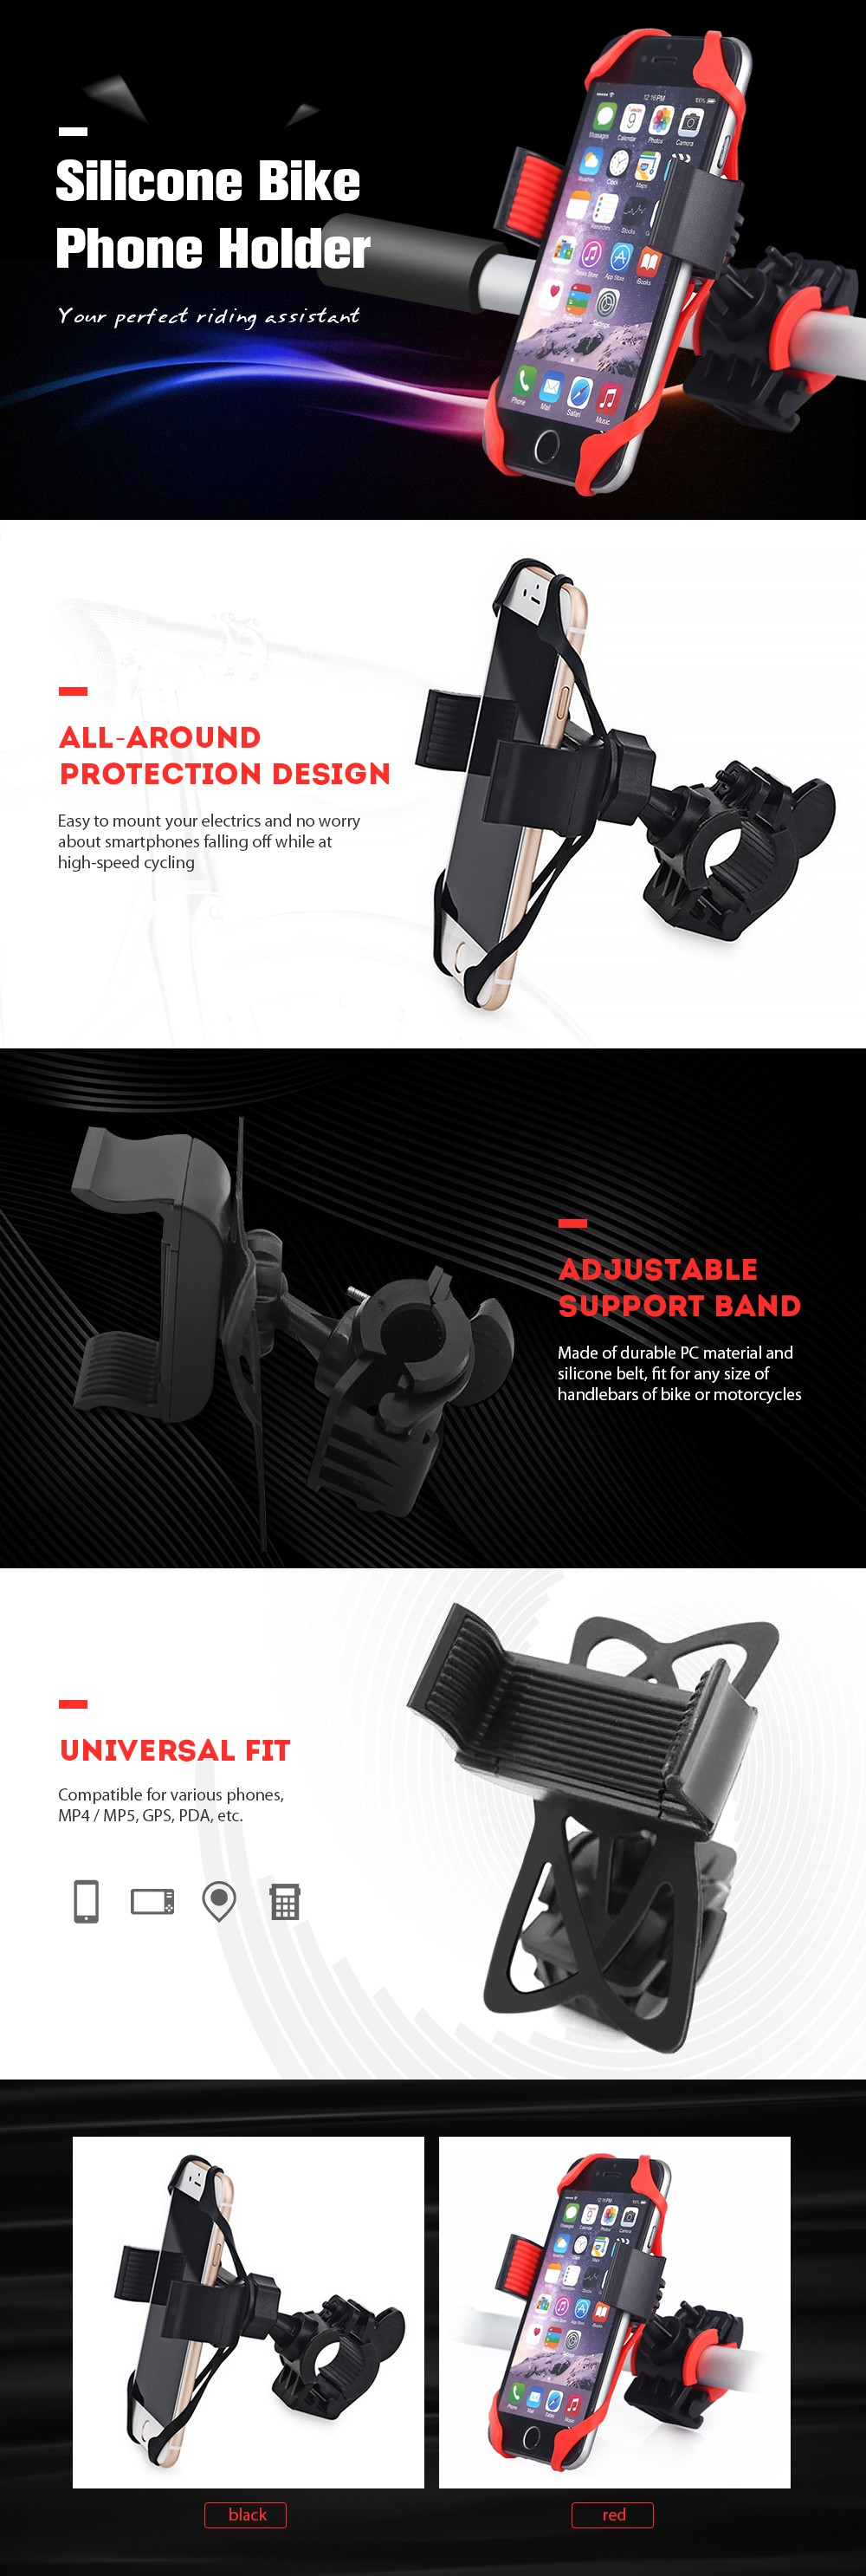 Universal Phone Holder with Silicone Support Band - Black